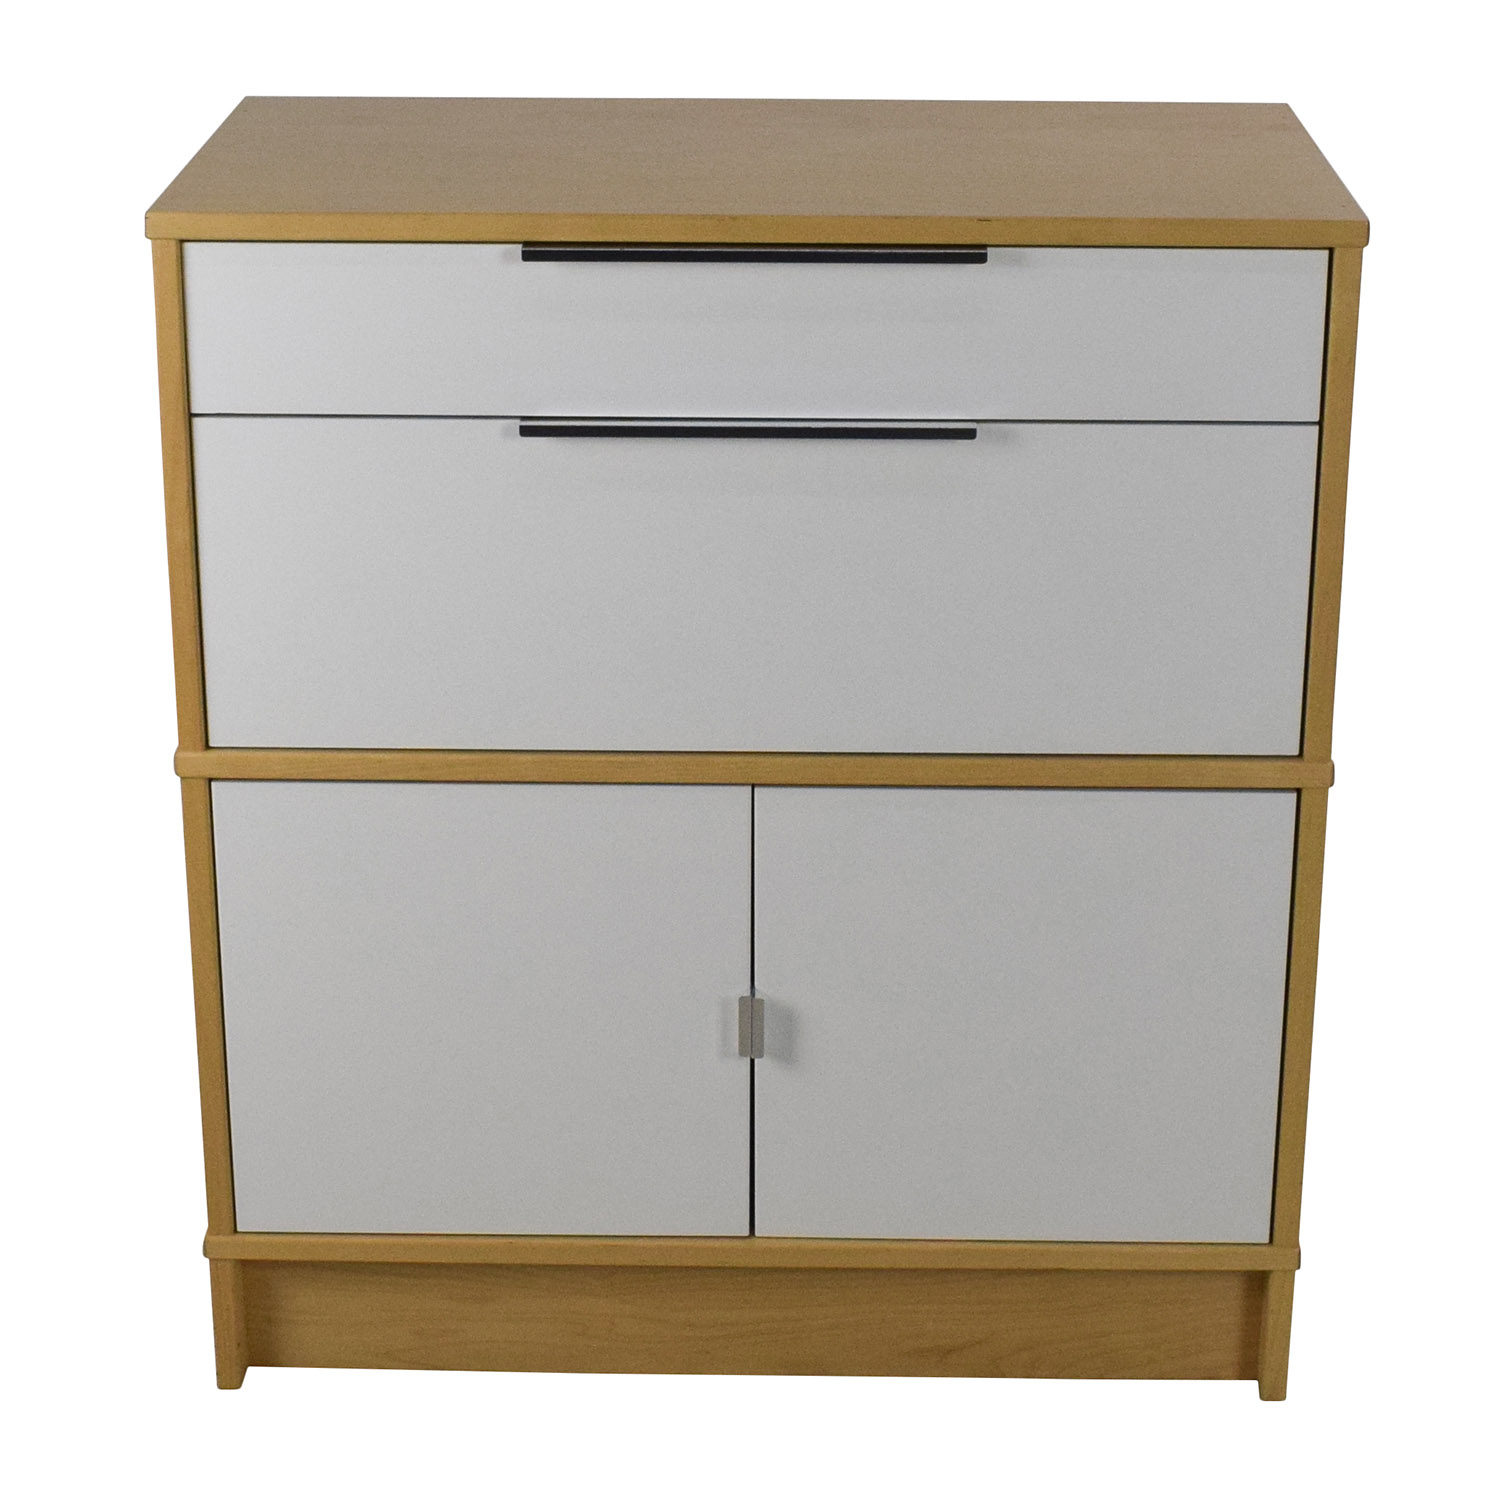 interior file mobile full filing excellent inovative size decoupage metal with cool appealing collections used drawer office cabinet cart image long style of cabinets furniture officeworks